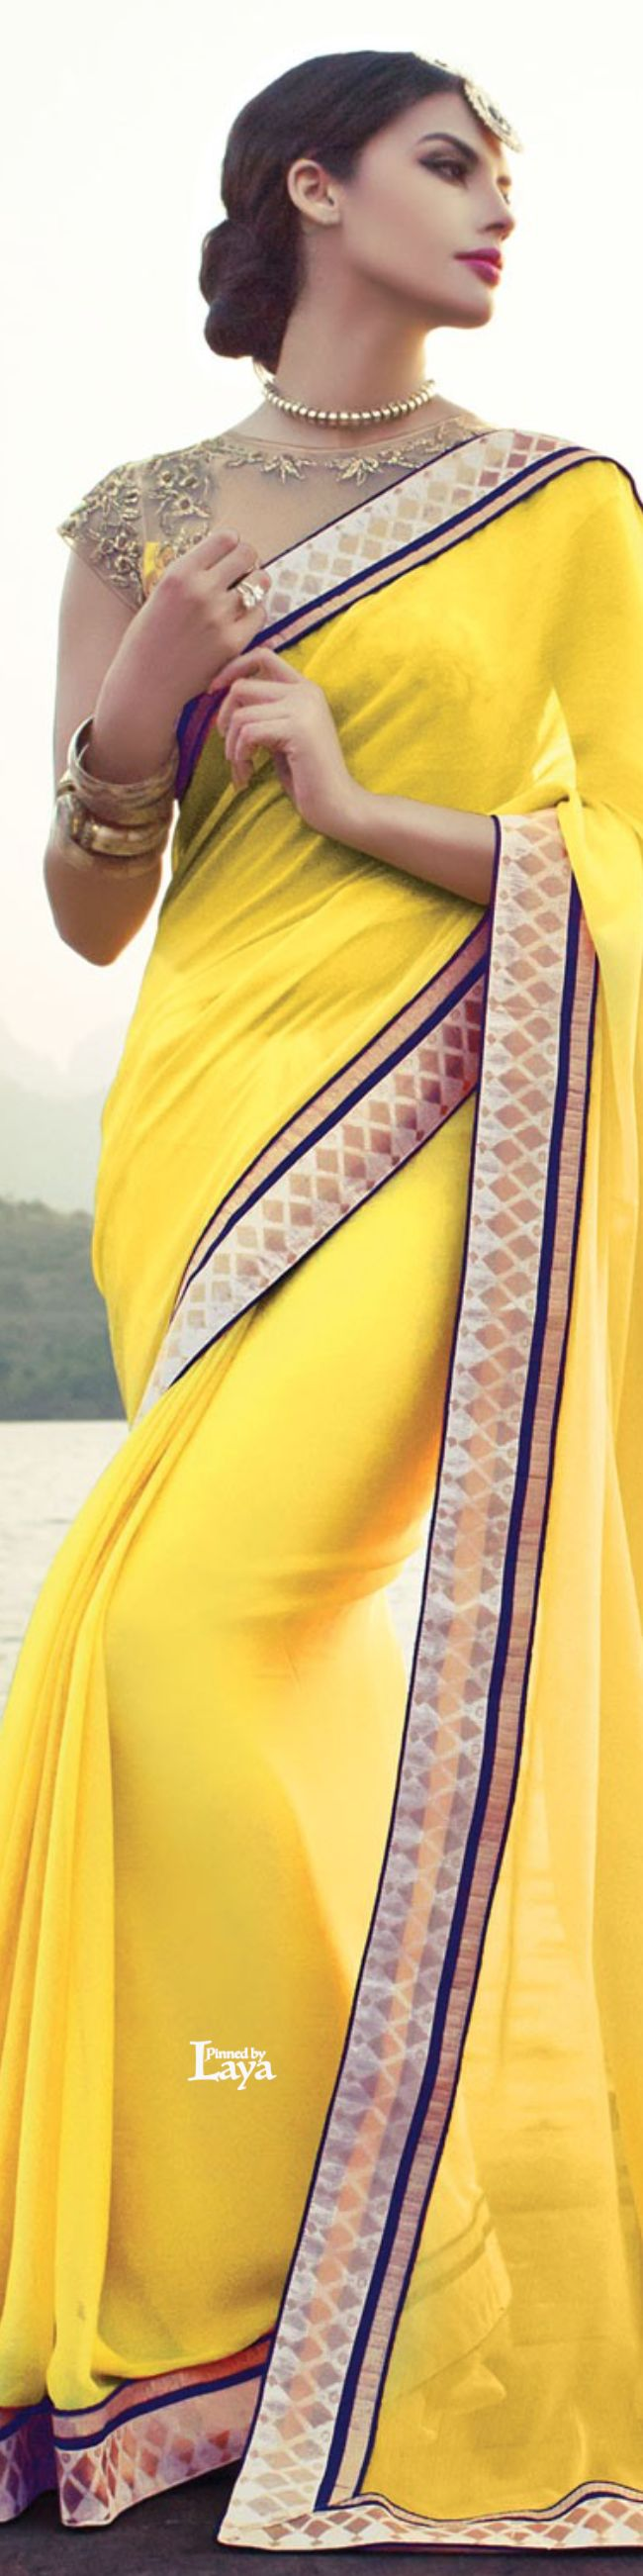 Yellow saree gold border beautiful for a day or night out